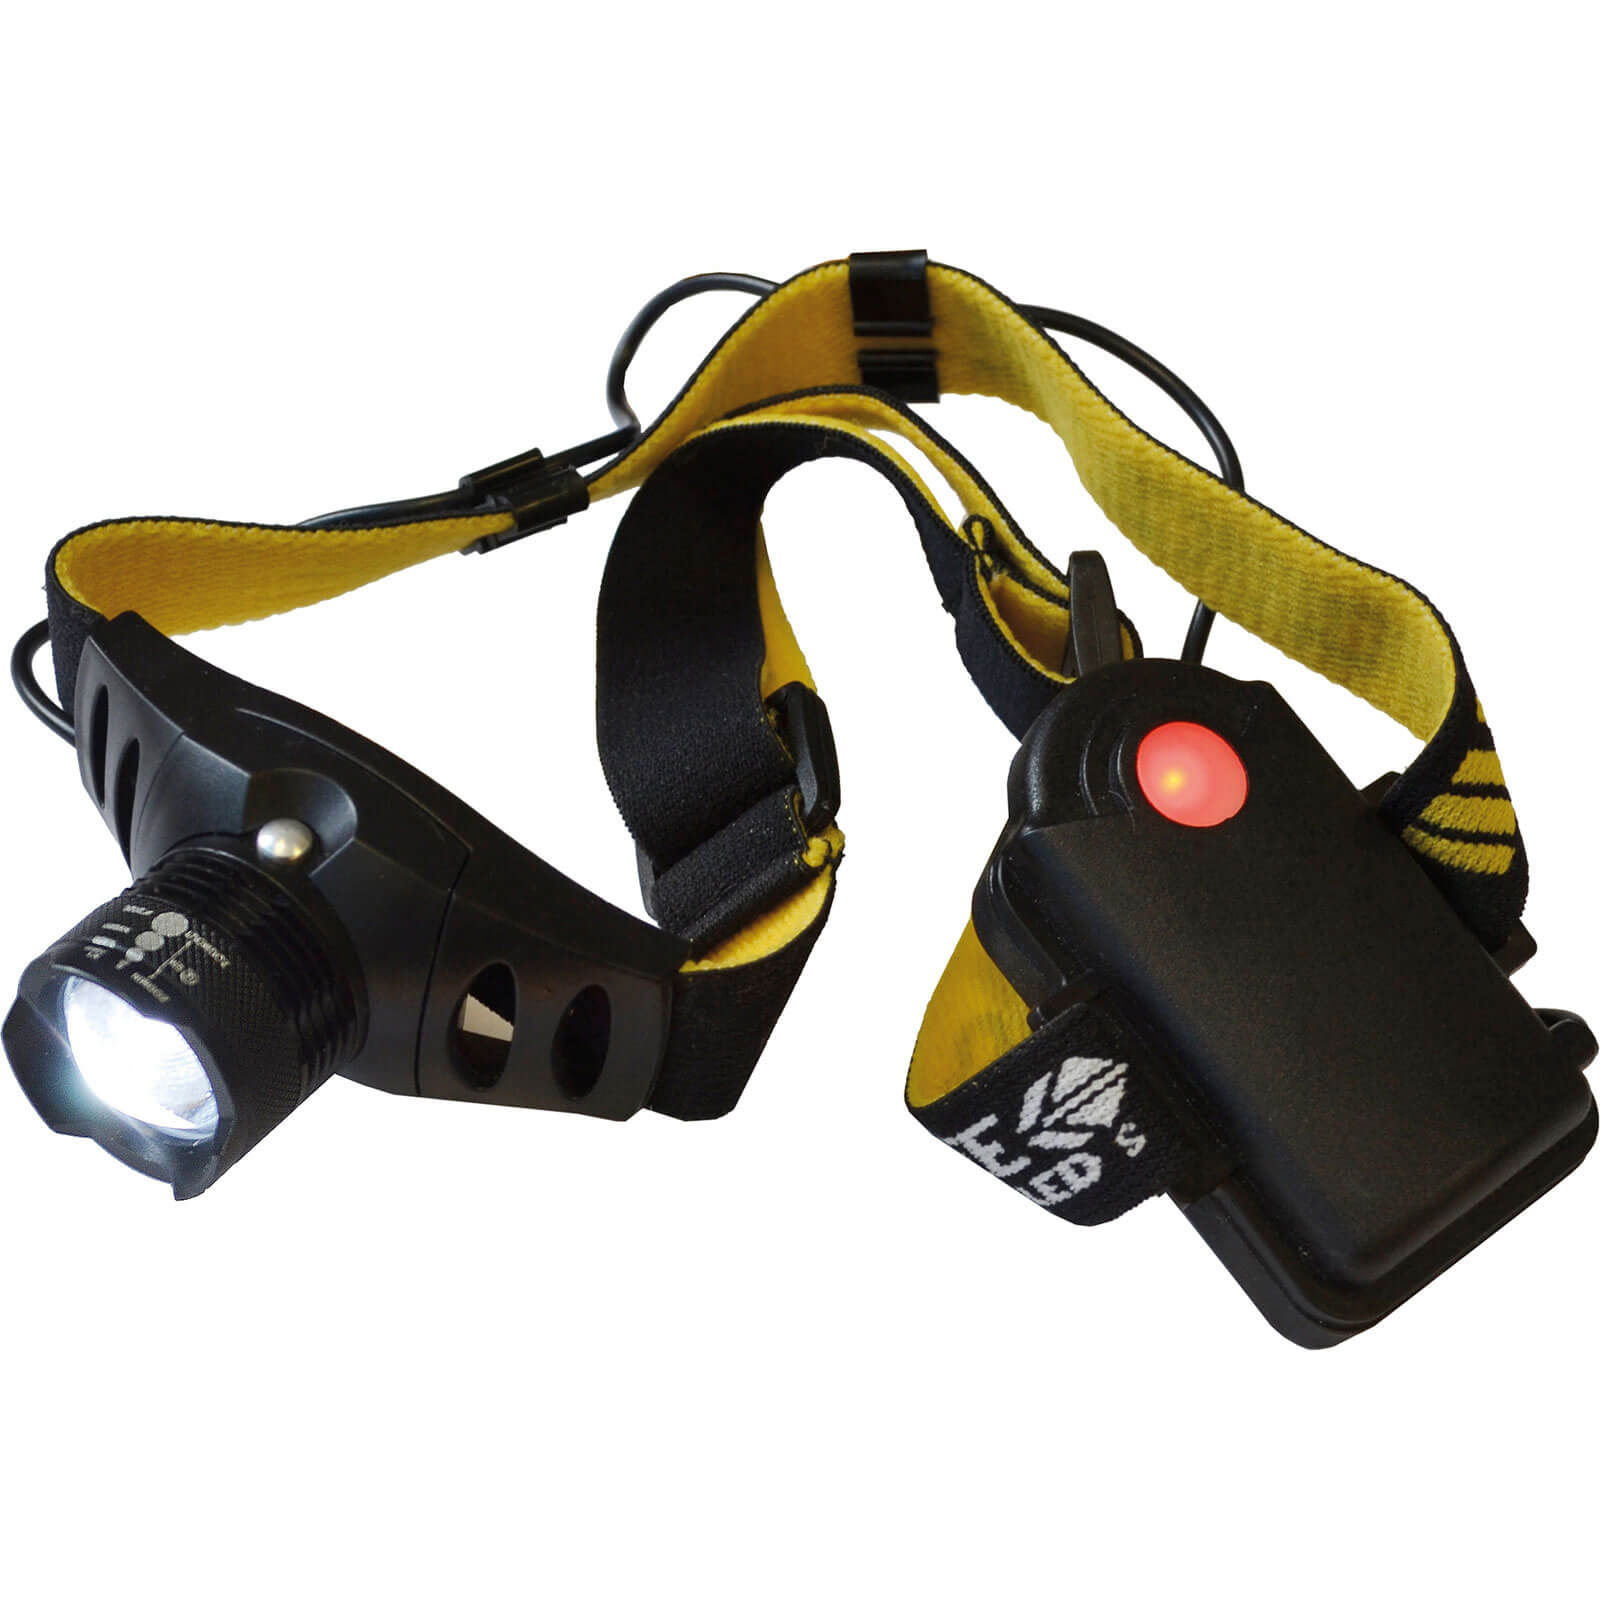 Image of Lighthouse 3 Function Head Torch 3 Watt Black